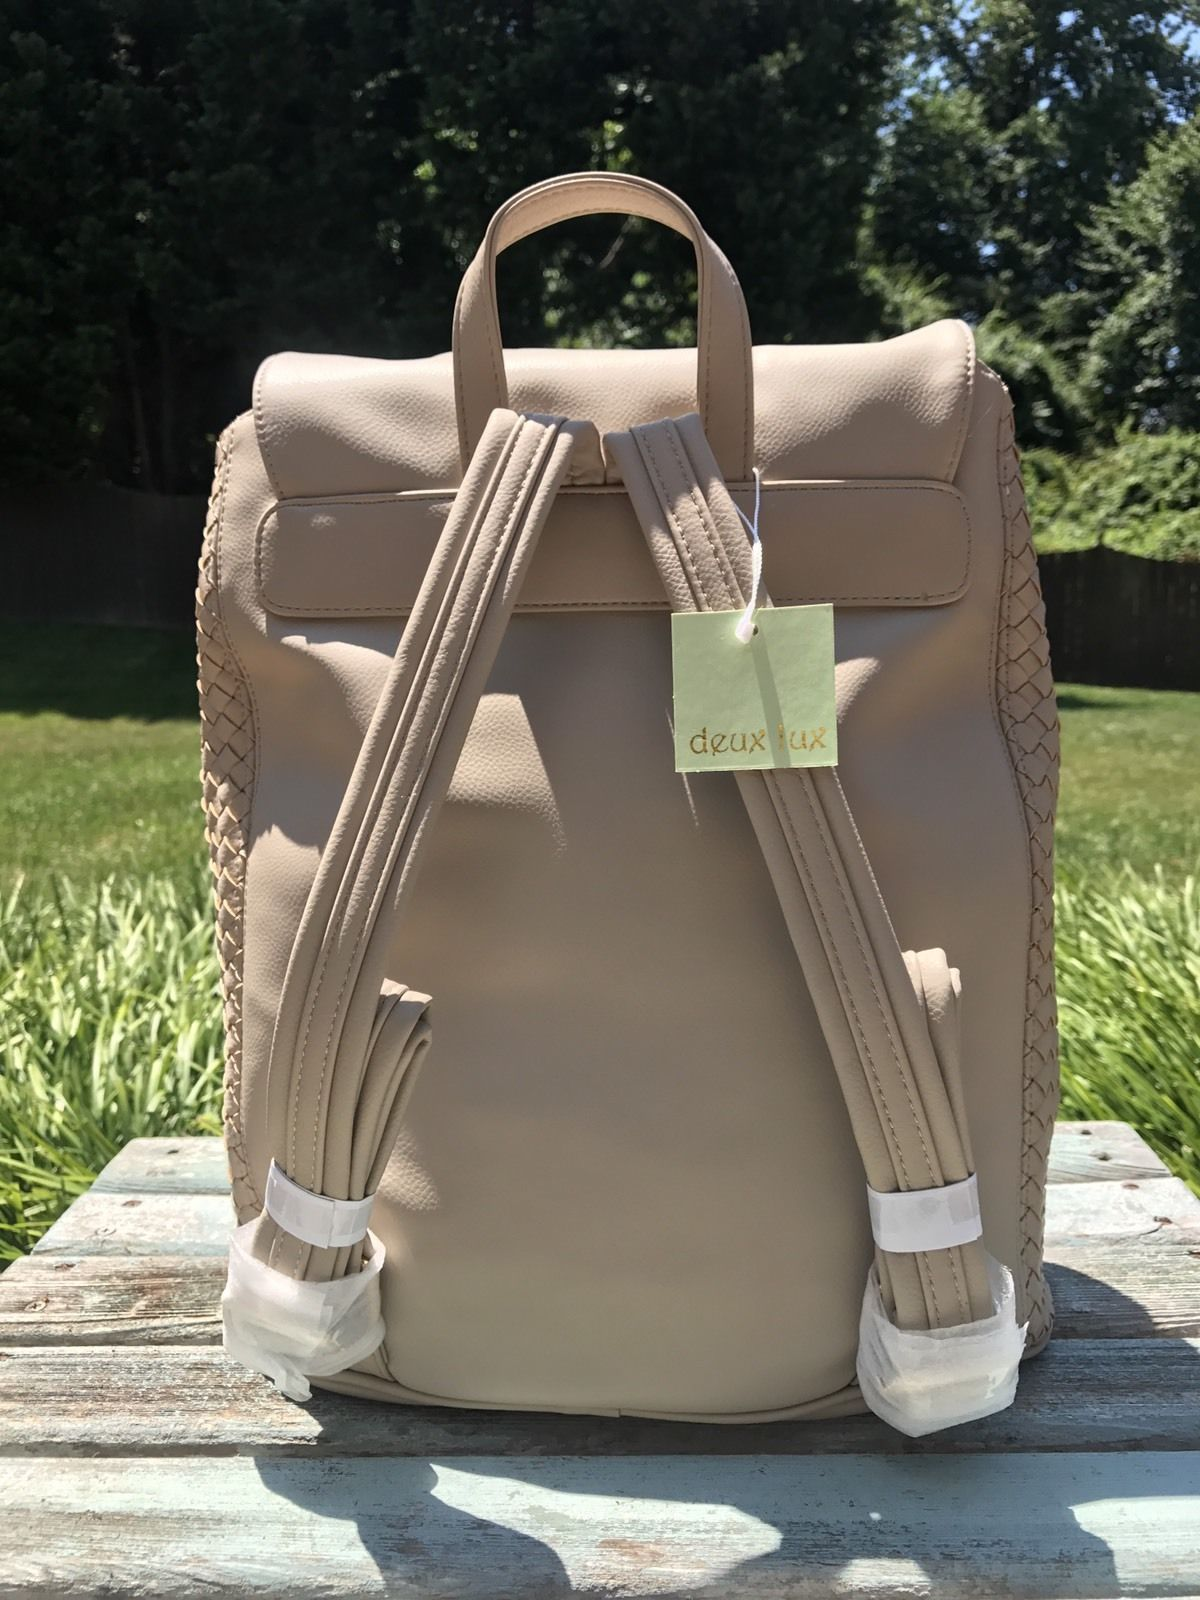 Deux Lux Luxury Bowery Backpack Camel/Off-White/Cream $130 NEW with tags NWT image 2